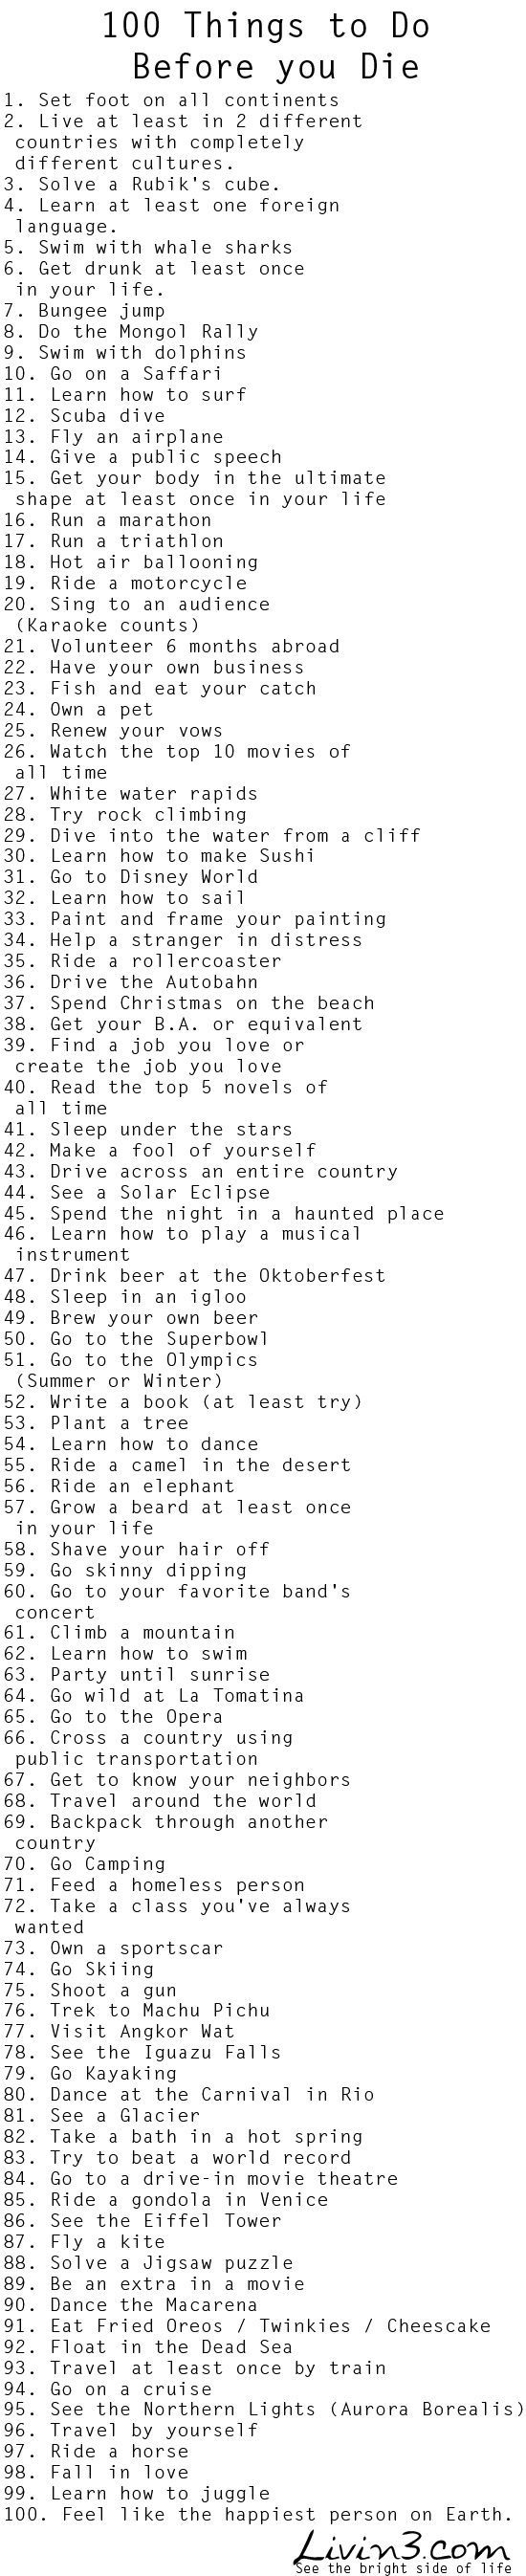 "100 Things to do before I die ""Bucket List"" Live Your Life. Ya know, except the beard one... by Paola114"